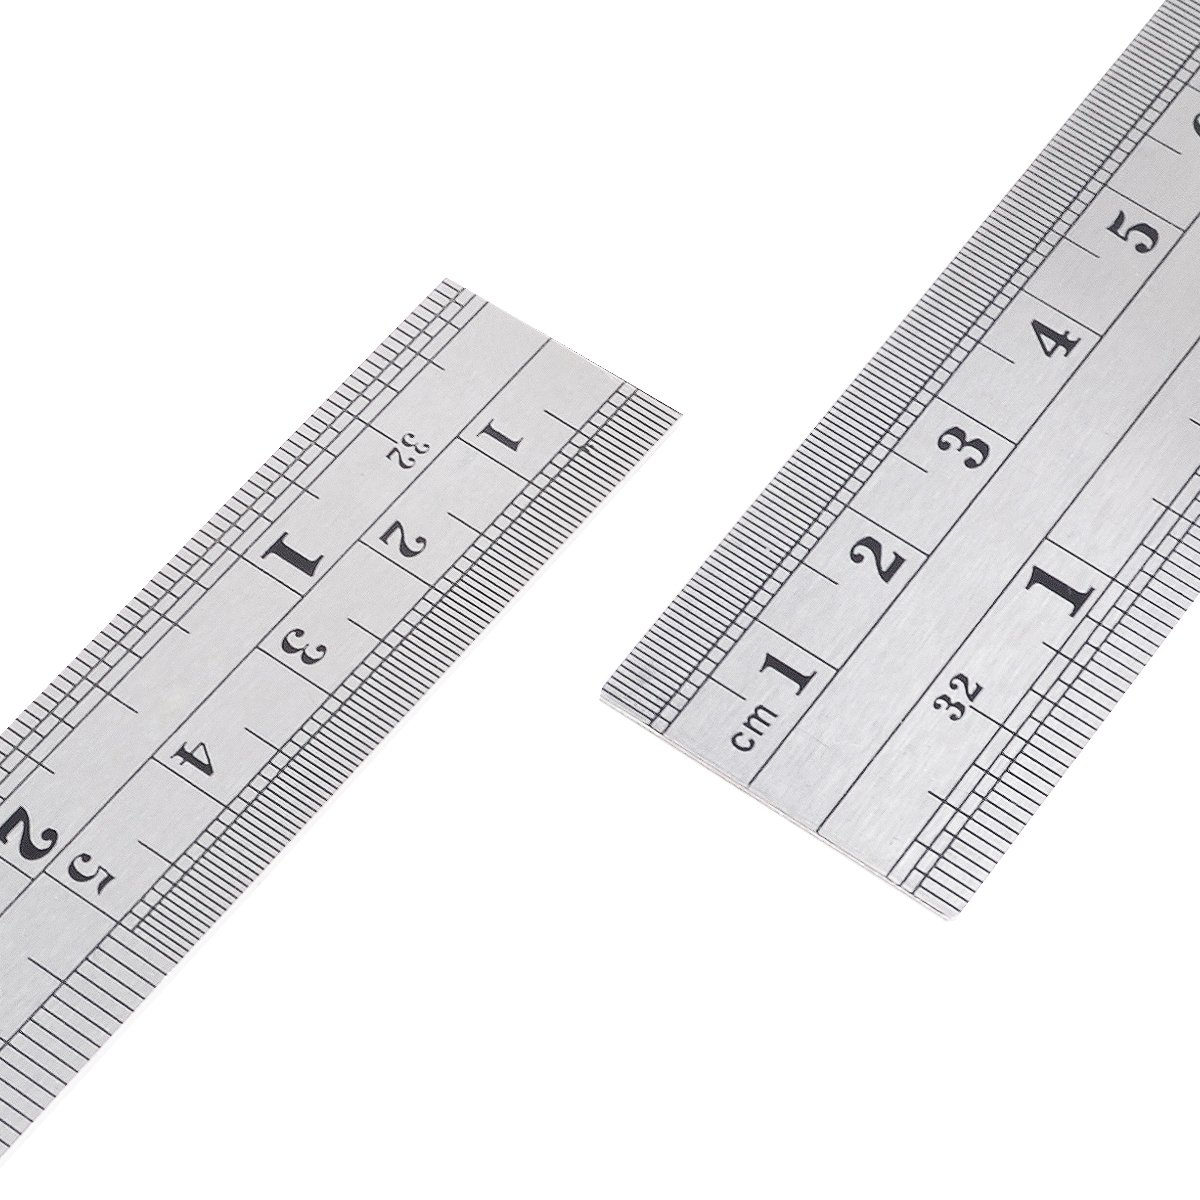 Metal Rule Kit including 12 Inch Ruler and 6 Inch Ruler with Conversion Table and Storage Bag HusDow Stainless Steel Rulers Set